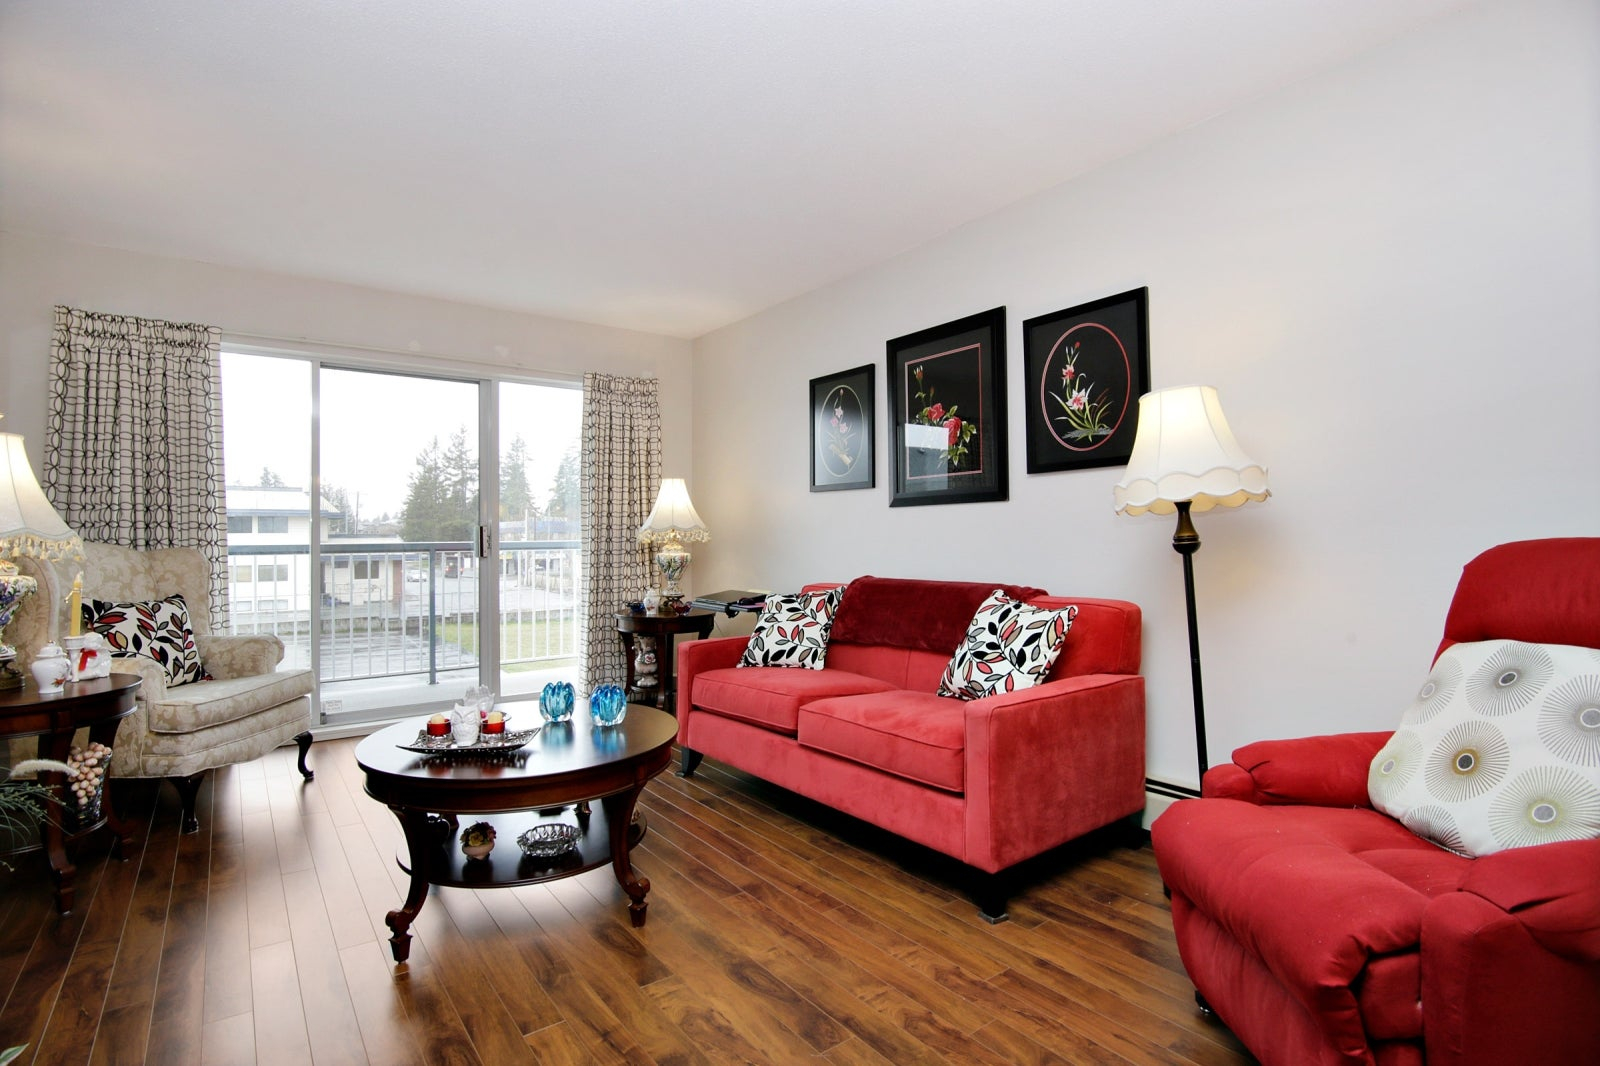 210 2425 CHURCH STREET - Abbotsford West Apartment/Condo for sale, 2 Bedrooms (R2251162) #3